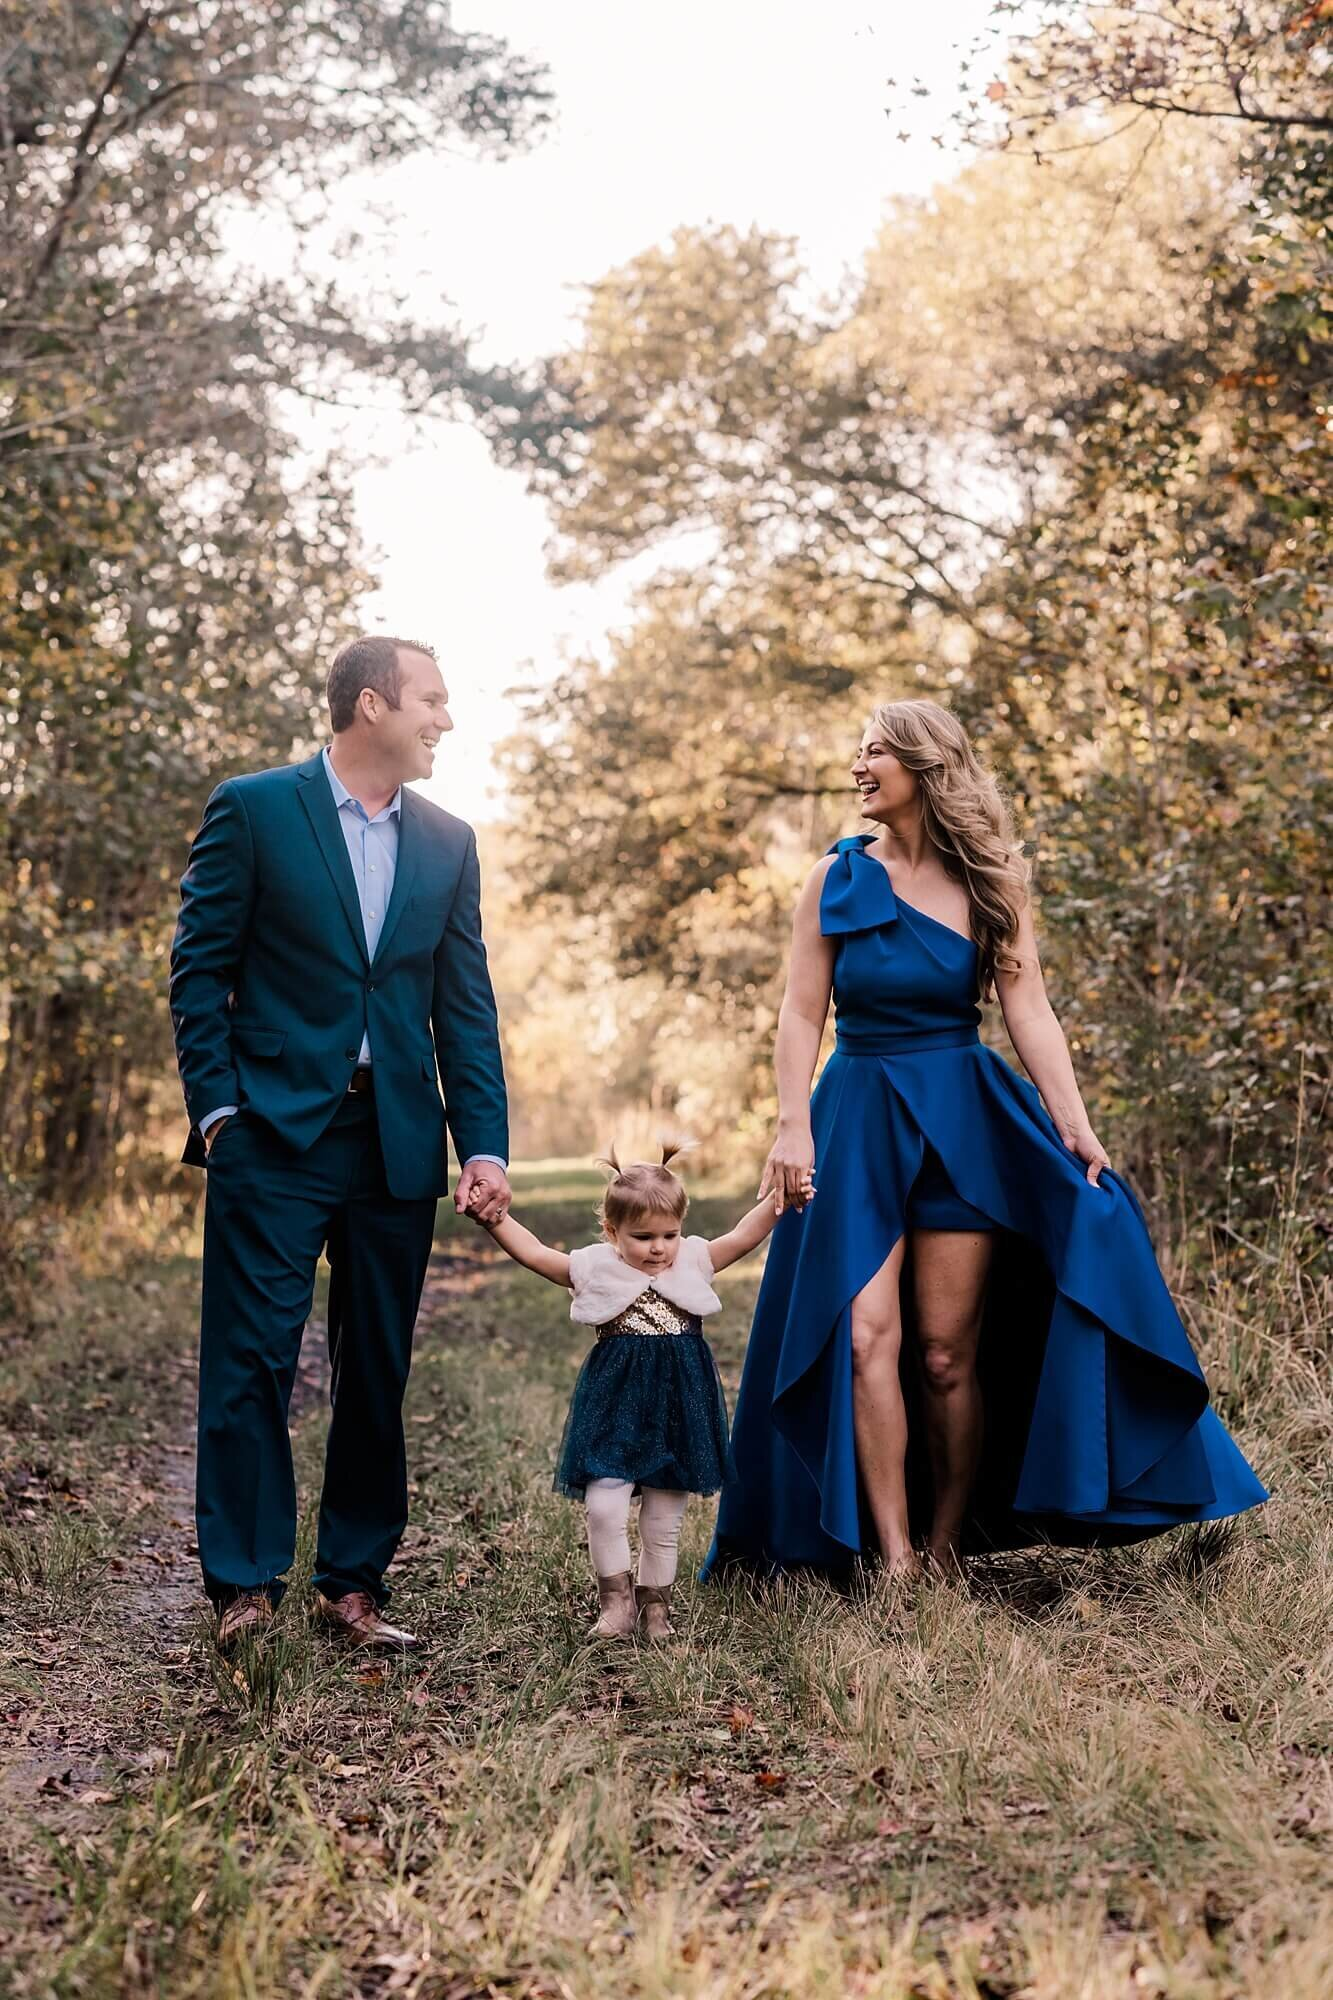 long-branch-park-family-session-orlando-haleigh-nicole-photography_0006